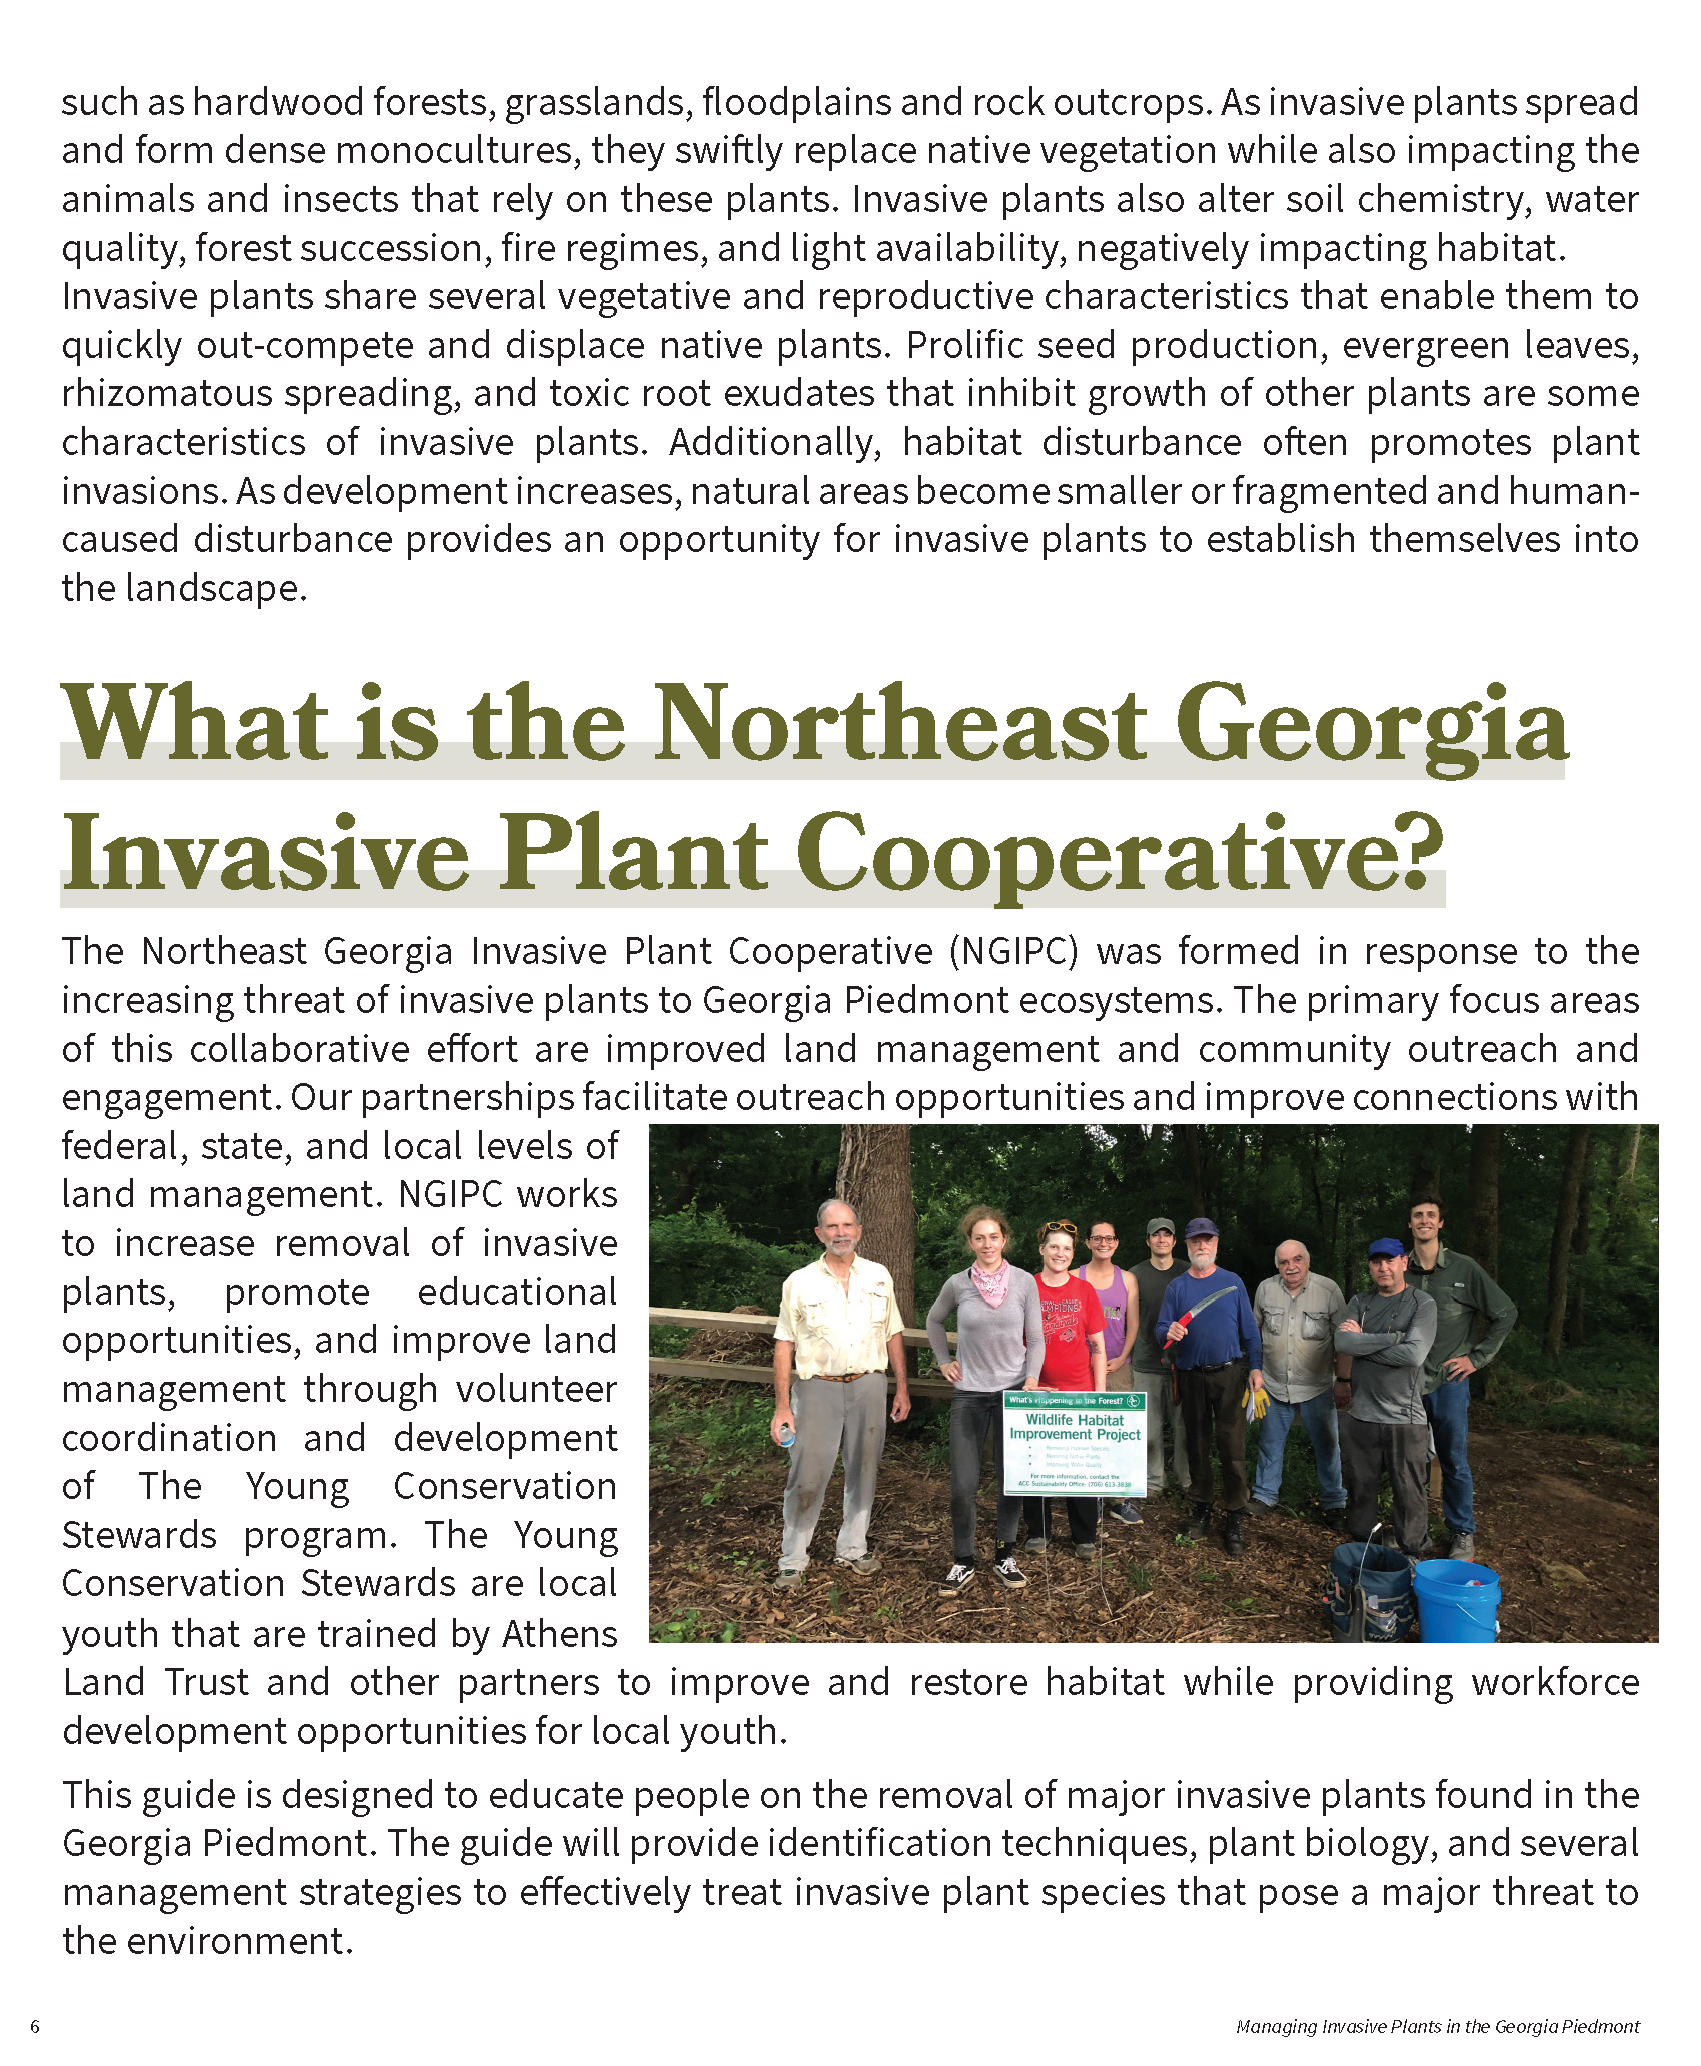 Managing Invasive Plants in the GA Piedmont for web_Page_05